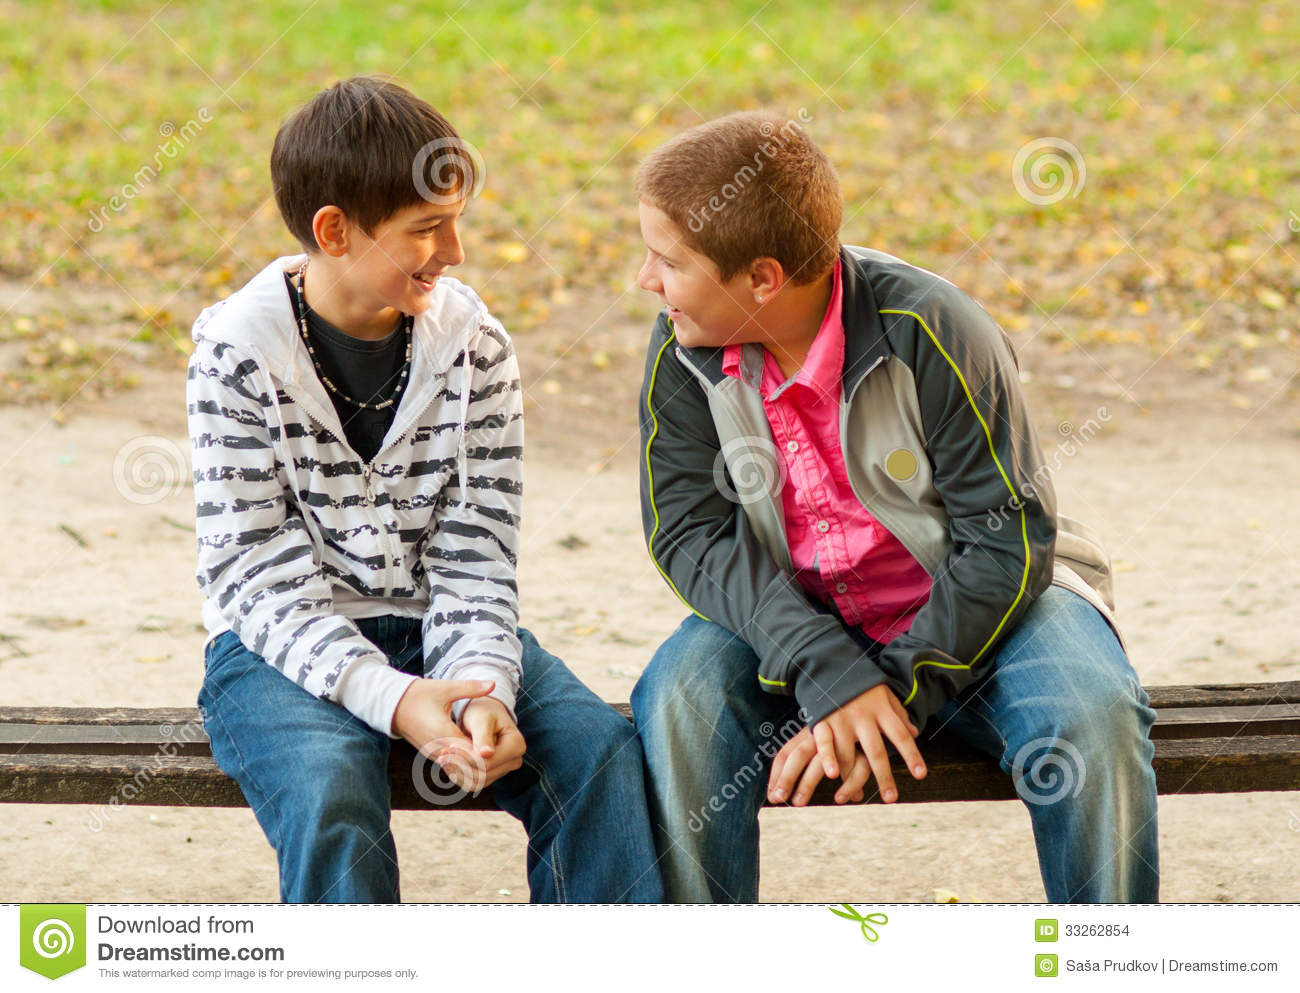 Two Teenage Friends Talking In The Park Stock Images - Image: 33262854